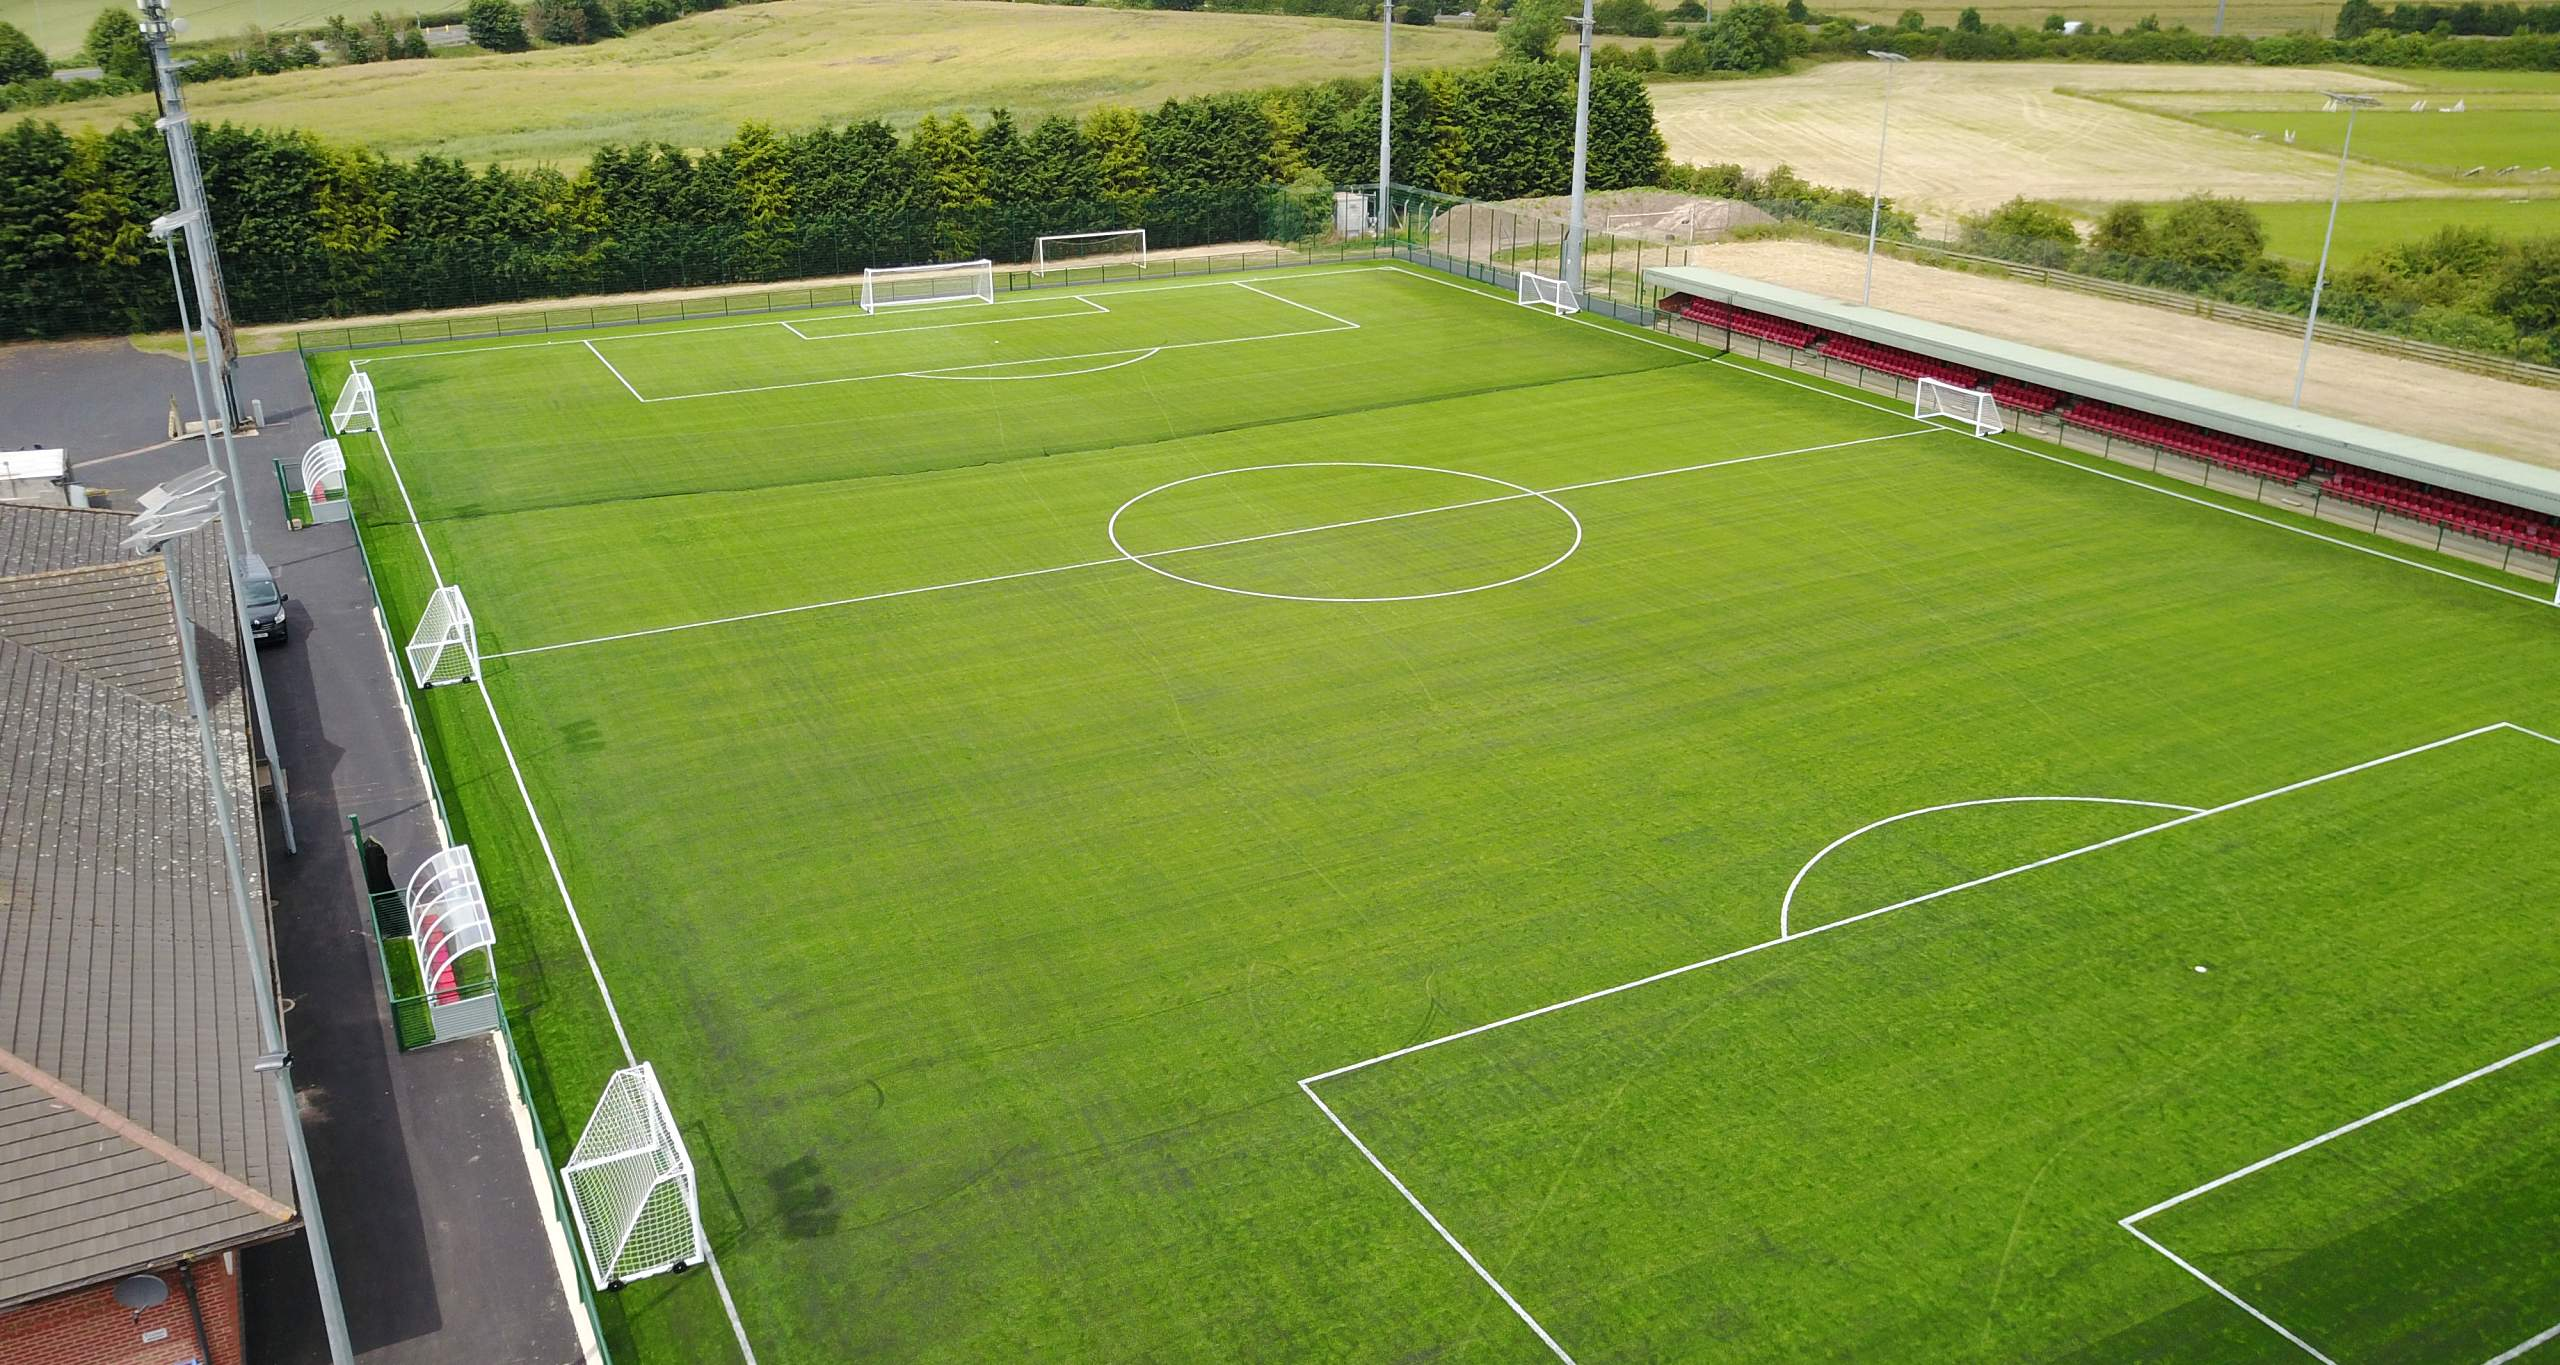 Upgrade of pitch to a 3G synthetic surface